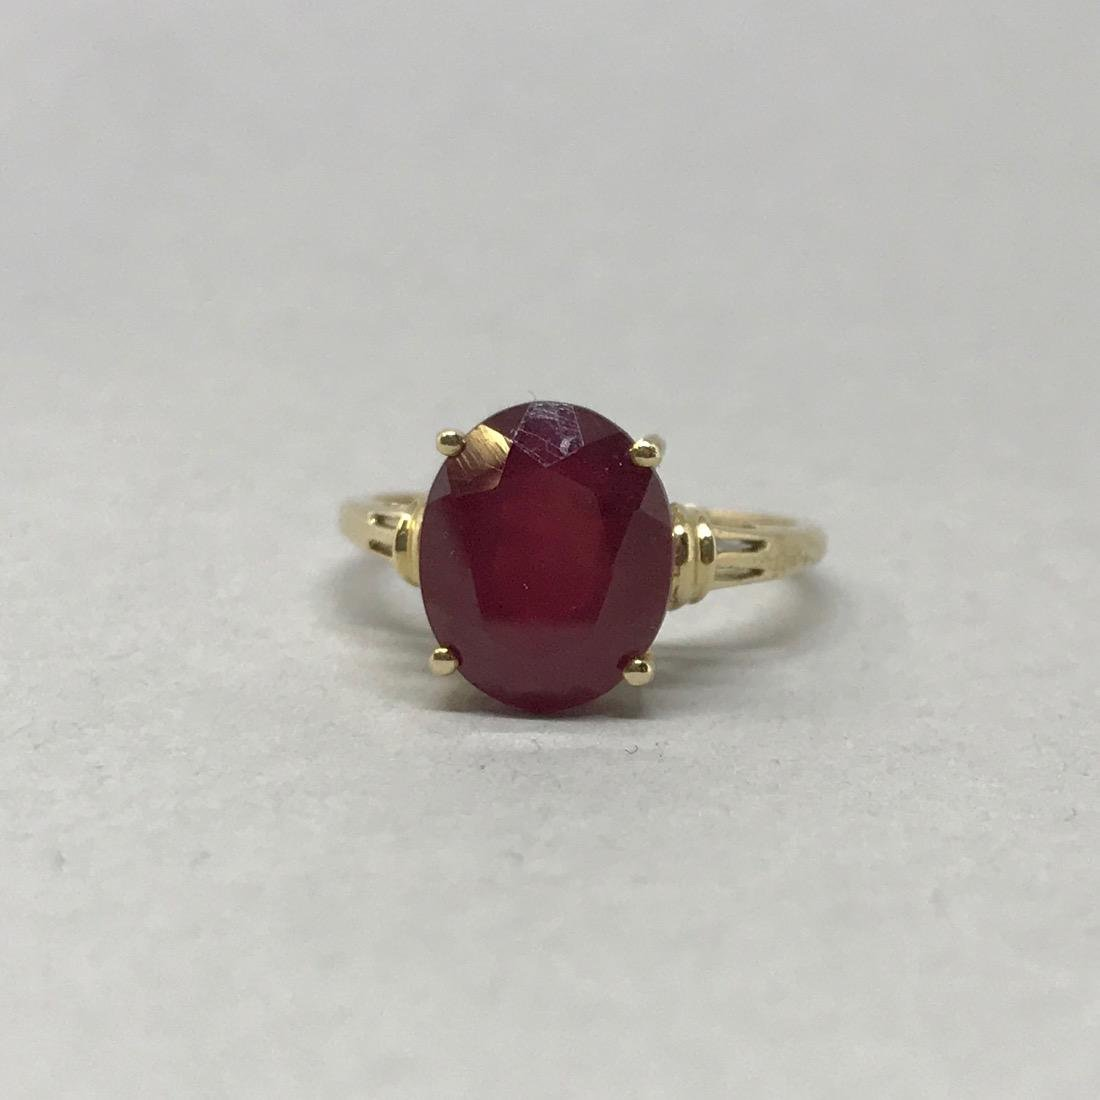 10K Gold Ruby Ring - 3